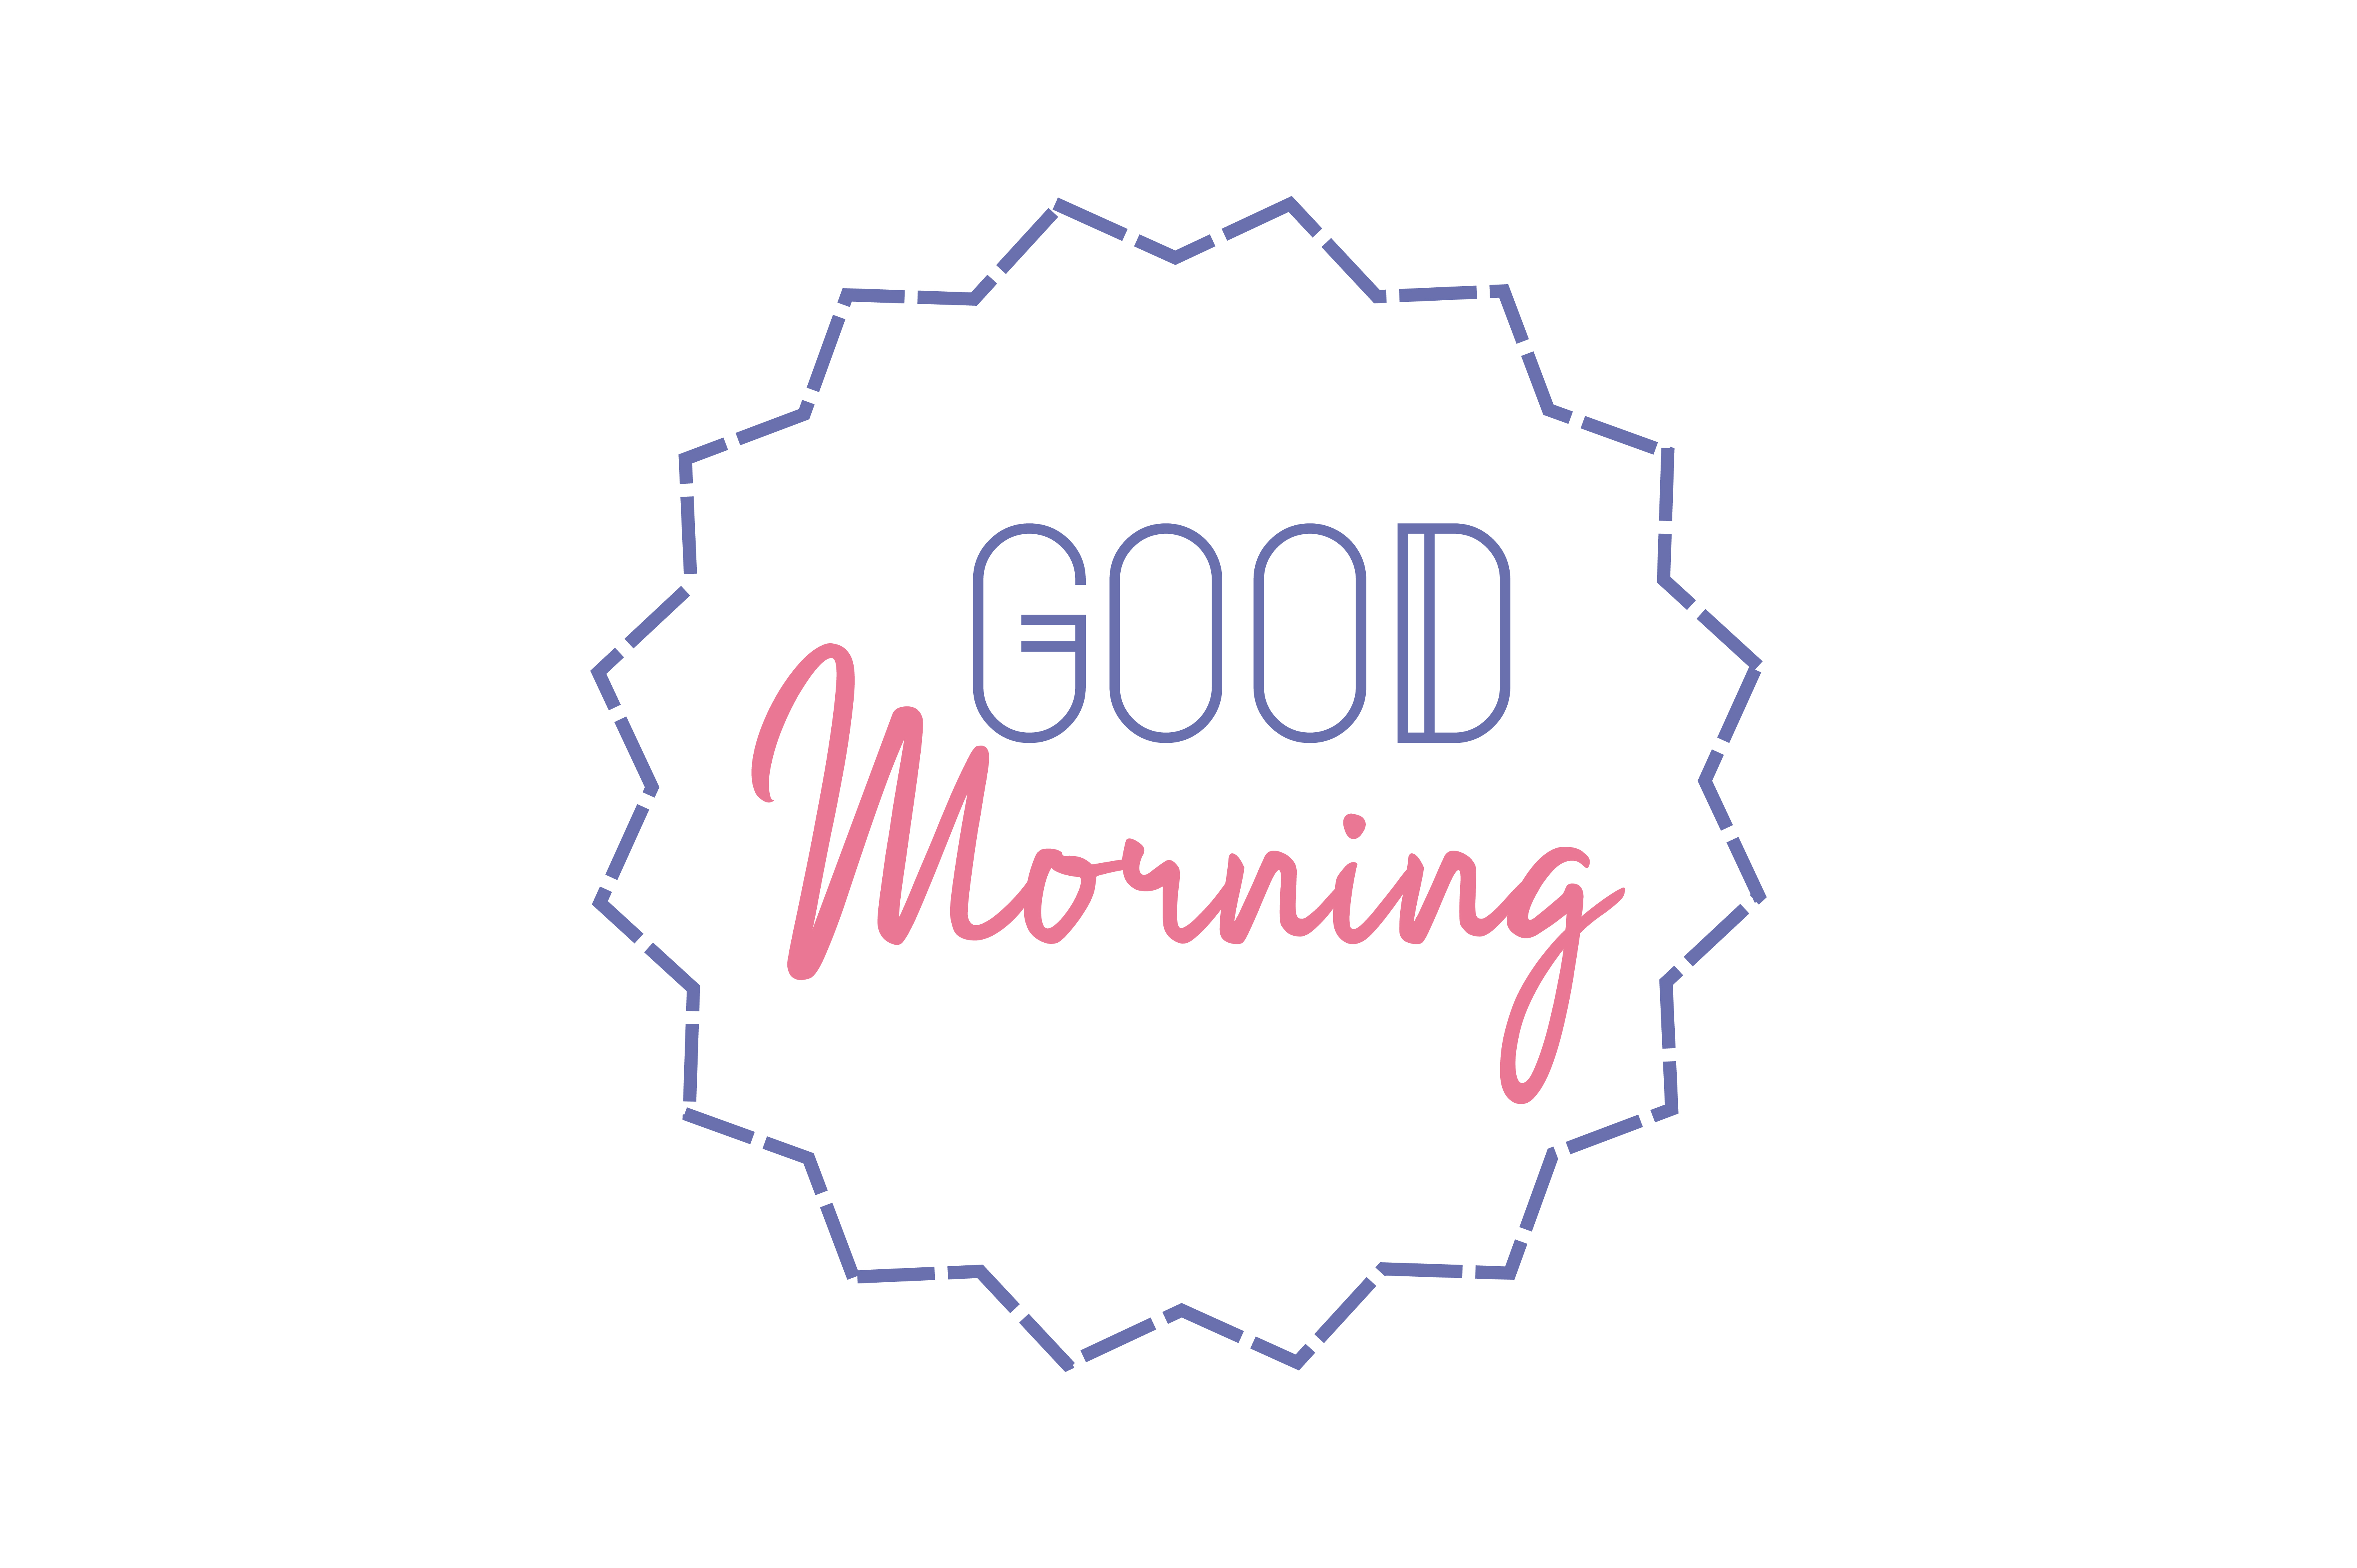 Download Free Good Morning Quote Graphic By Thelucky Creative Fabrica for Cricut Explore, Silhouette and other cutting machines.